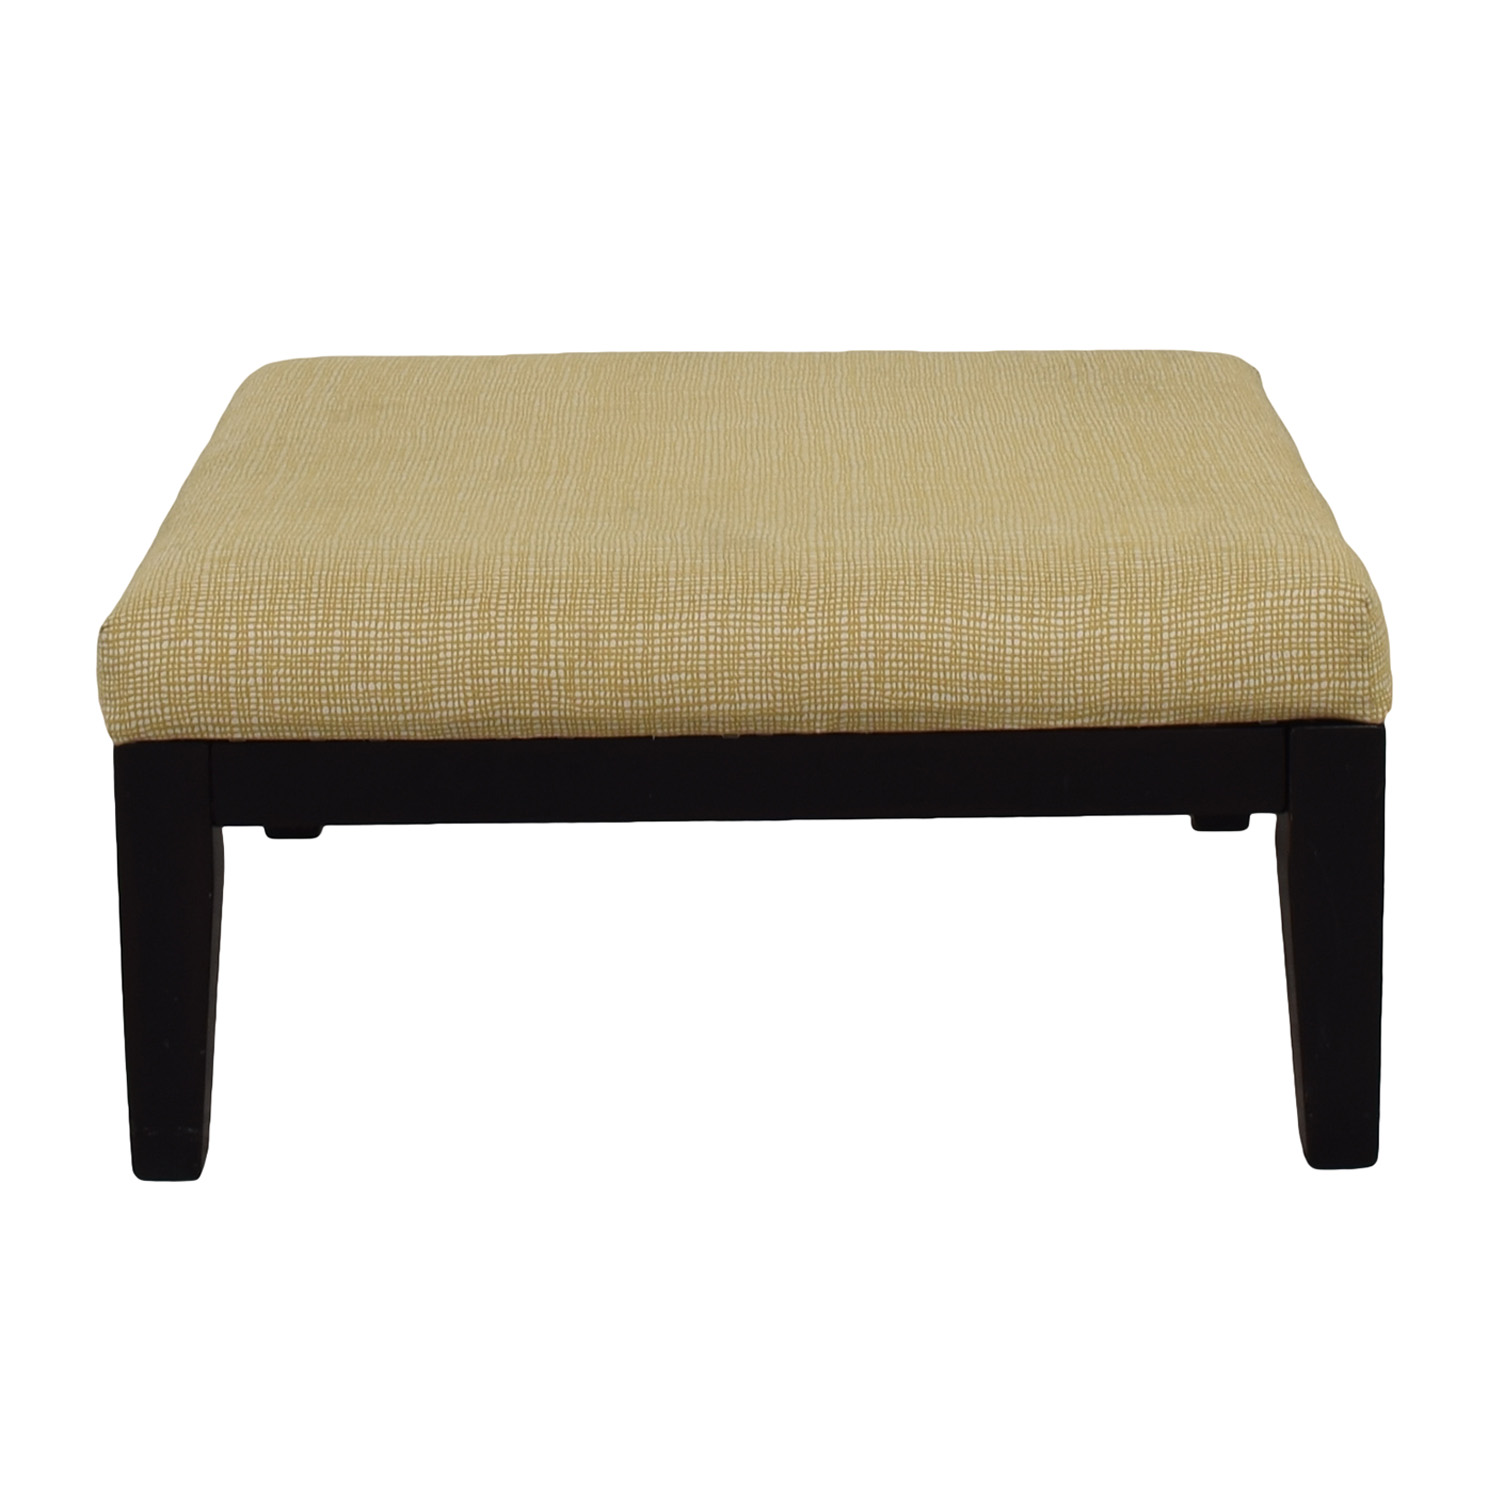 Ashley Furniture Ashley Furniture Beige Ottoman used